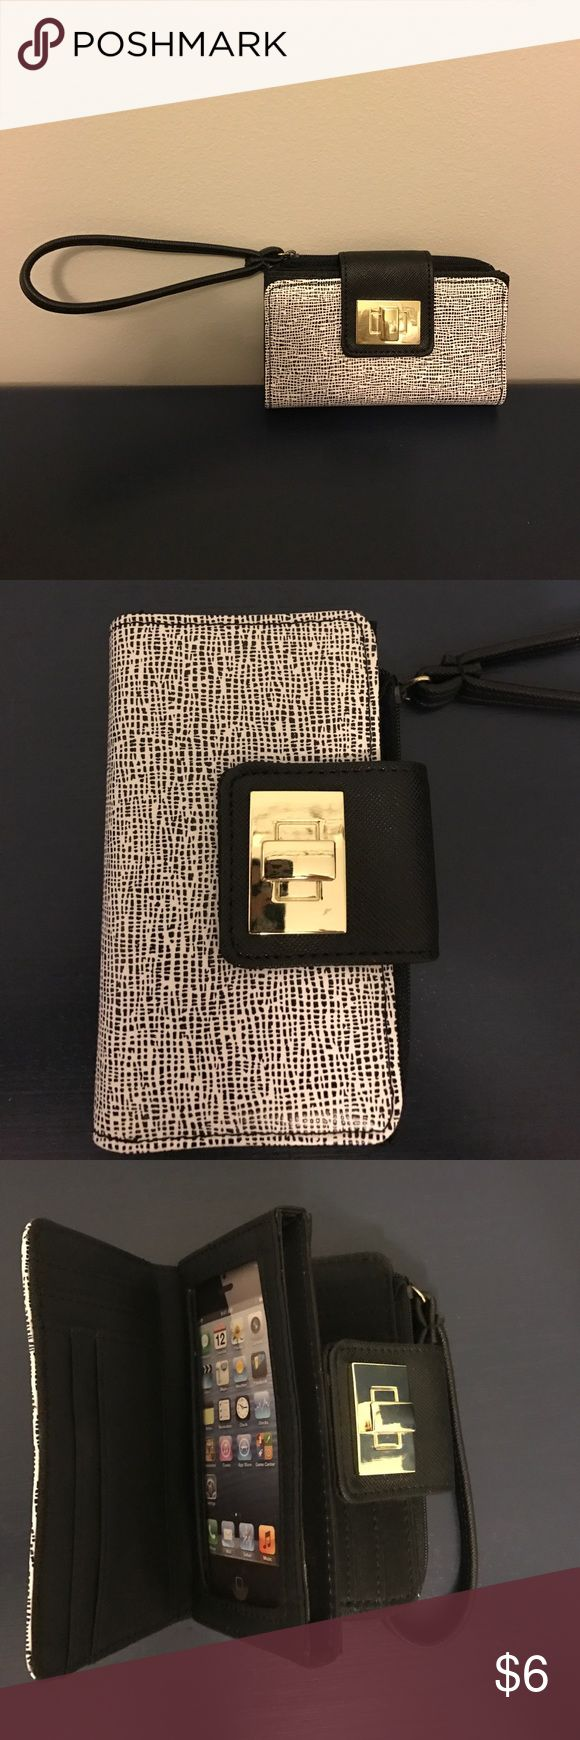 iPhone 4 wristlet/wallet. Never used Black and white wristlet/wallet for iPhone 4. Has clear window panel where the phone goes and can hold up to 10 other credit cards. Has a zipper pocket on back for change or lipstick. Buckle on front is gold. Never used excellent condition. ✅offers🚫trades Bags Clutches & Wristlets